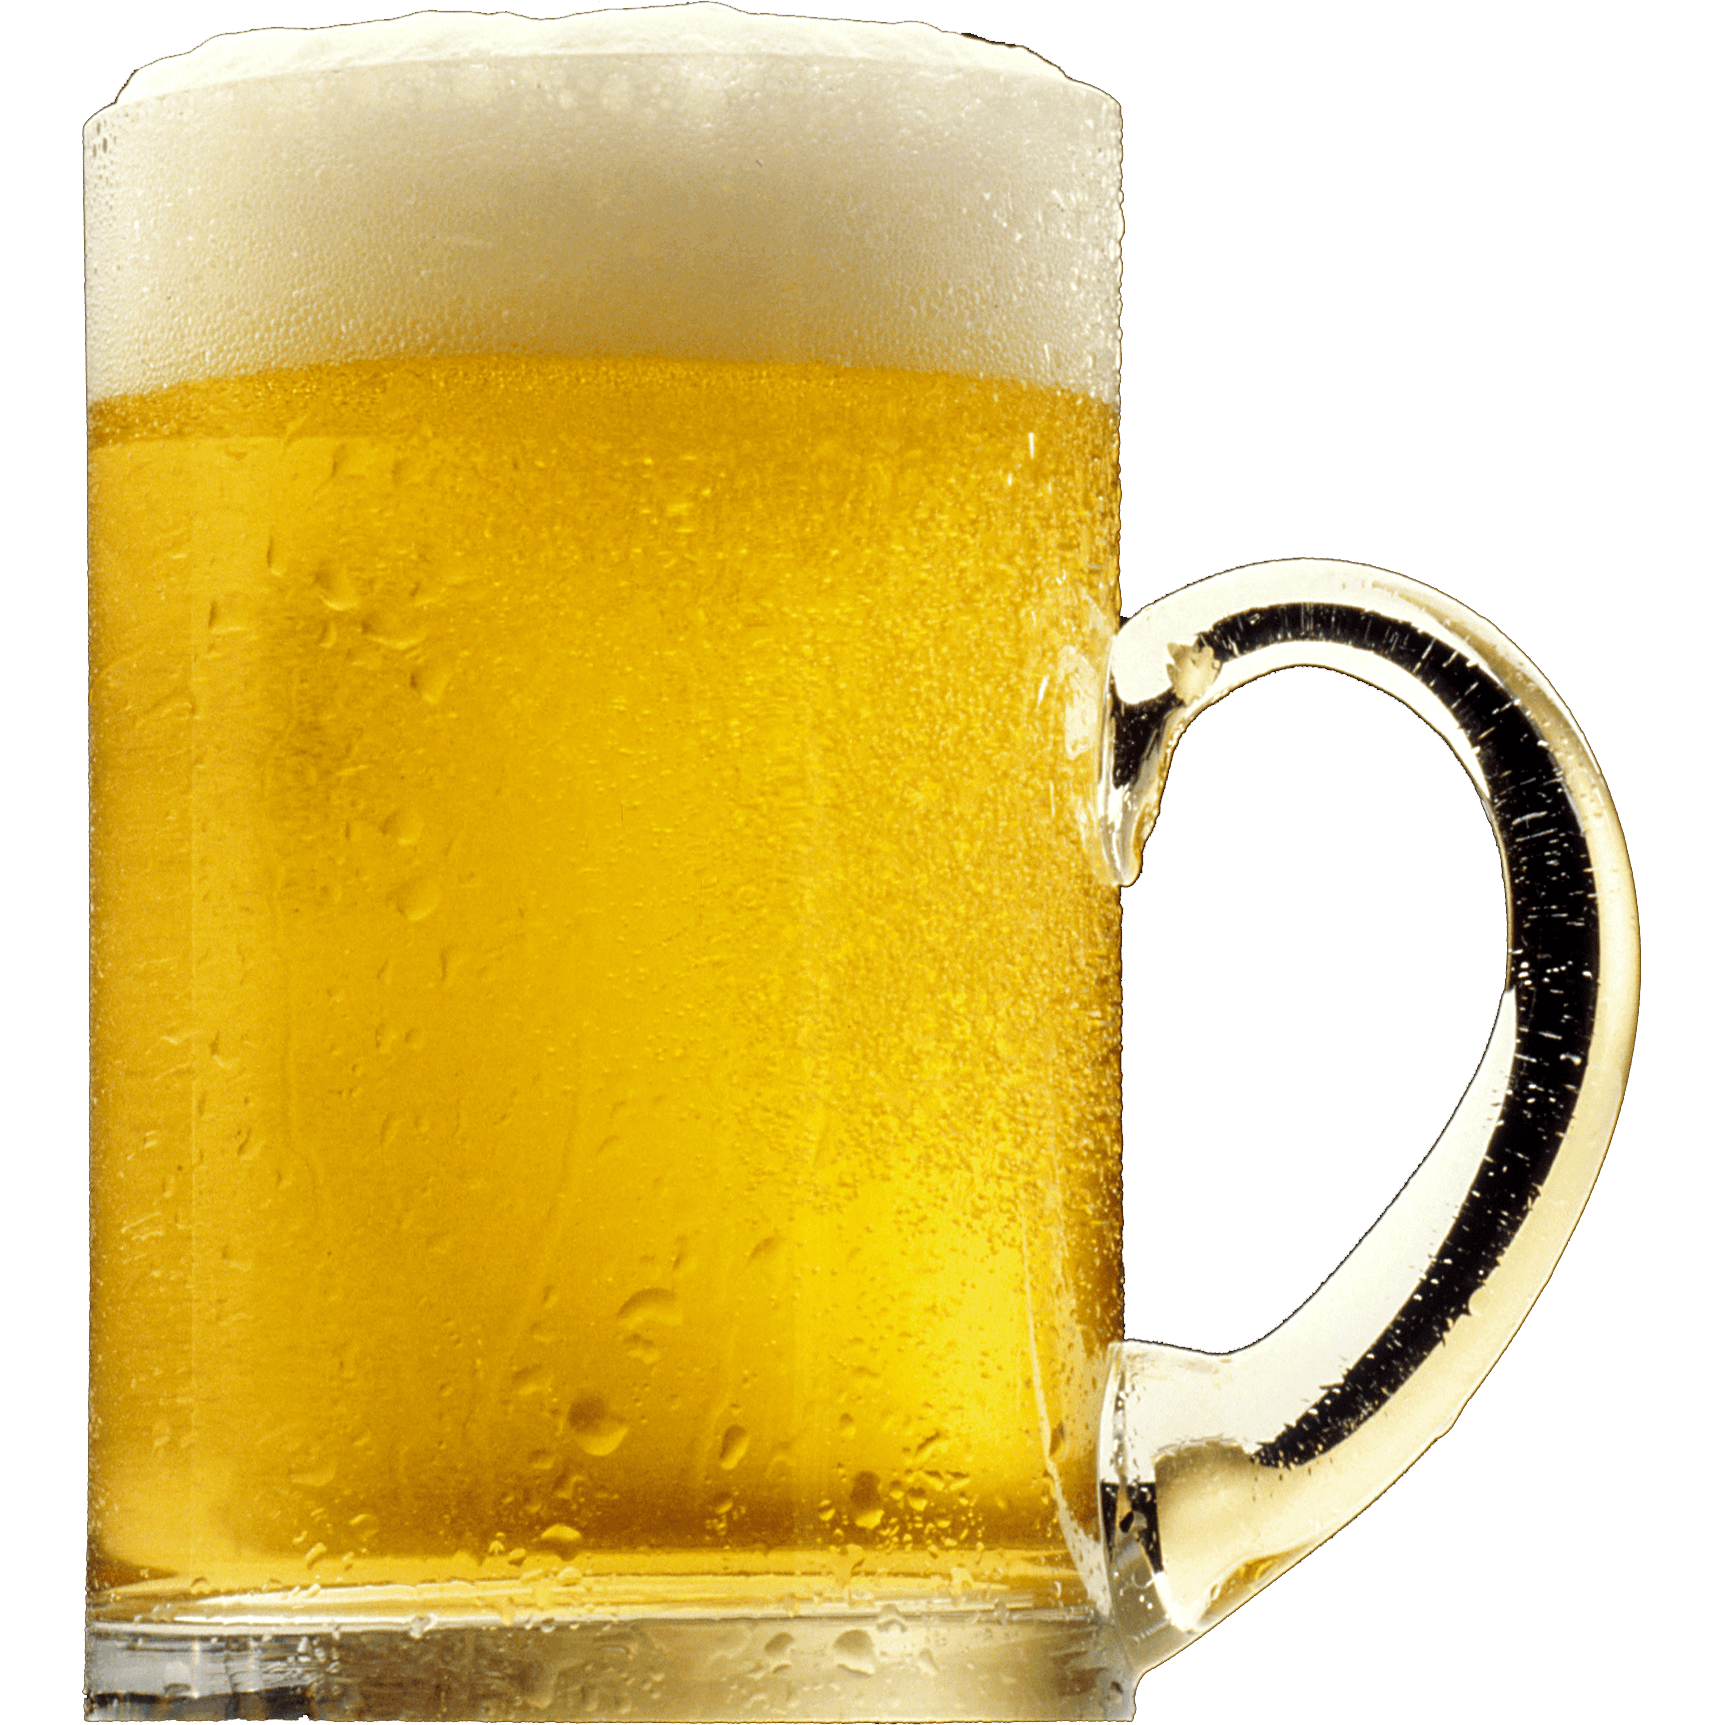 Glass of beer png. Download pint image hq